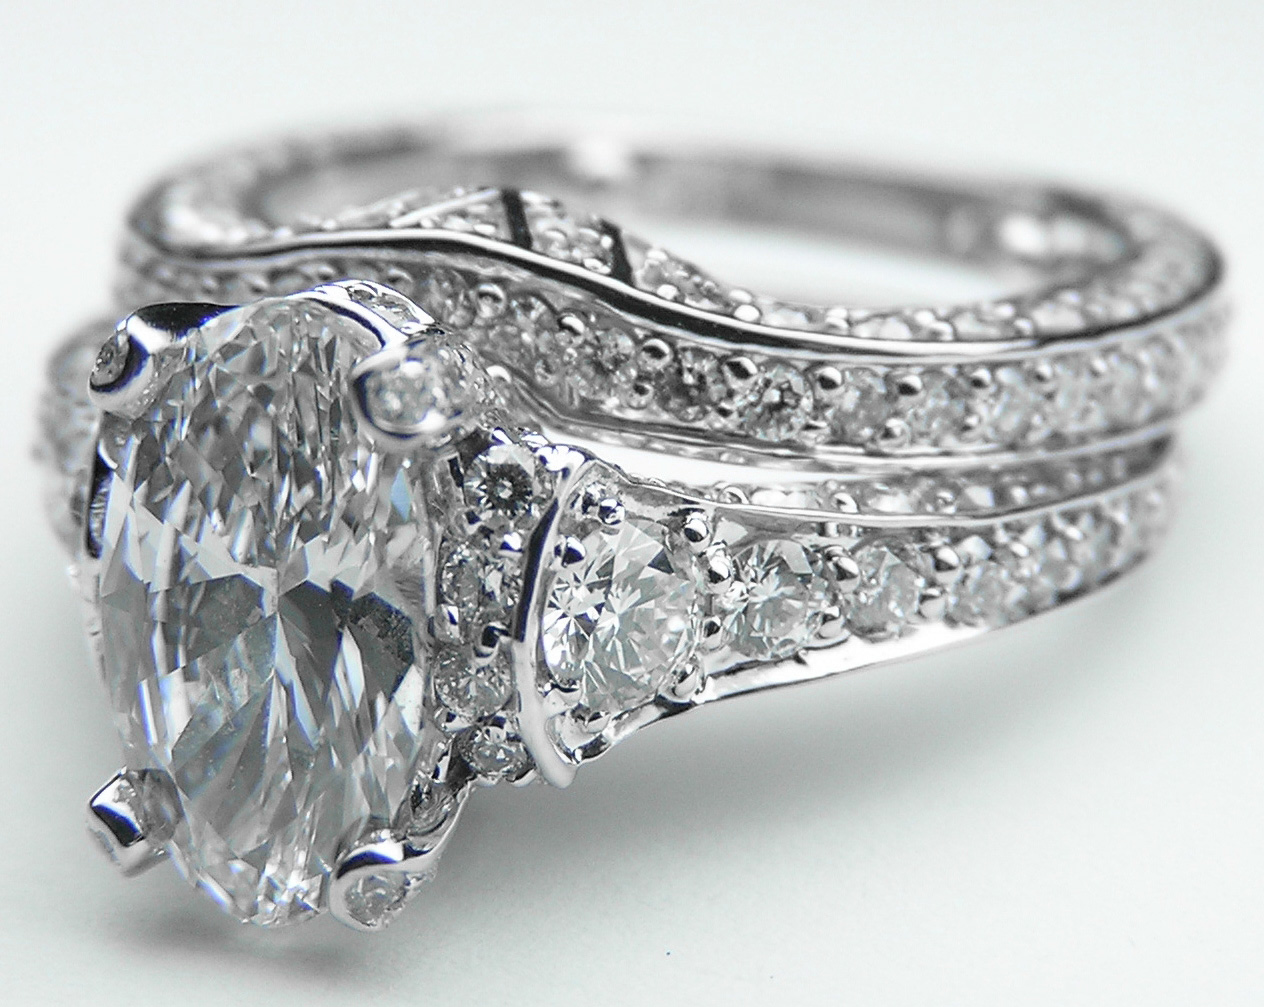 Large Oval Diamond Cathedral Graduated Pave Bridal Set In 14K White Gold